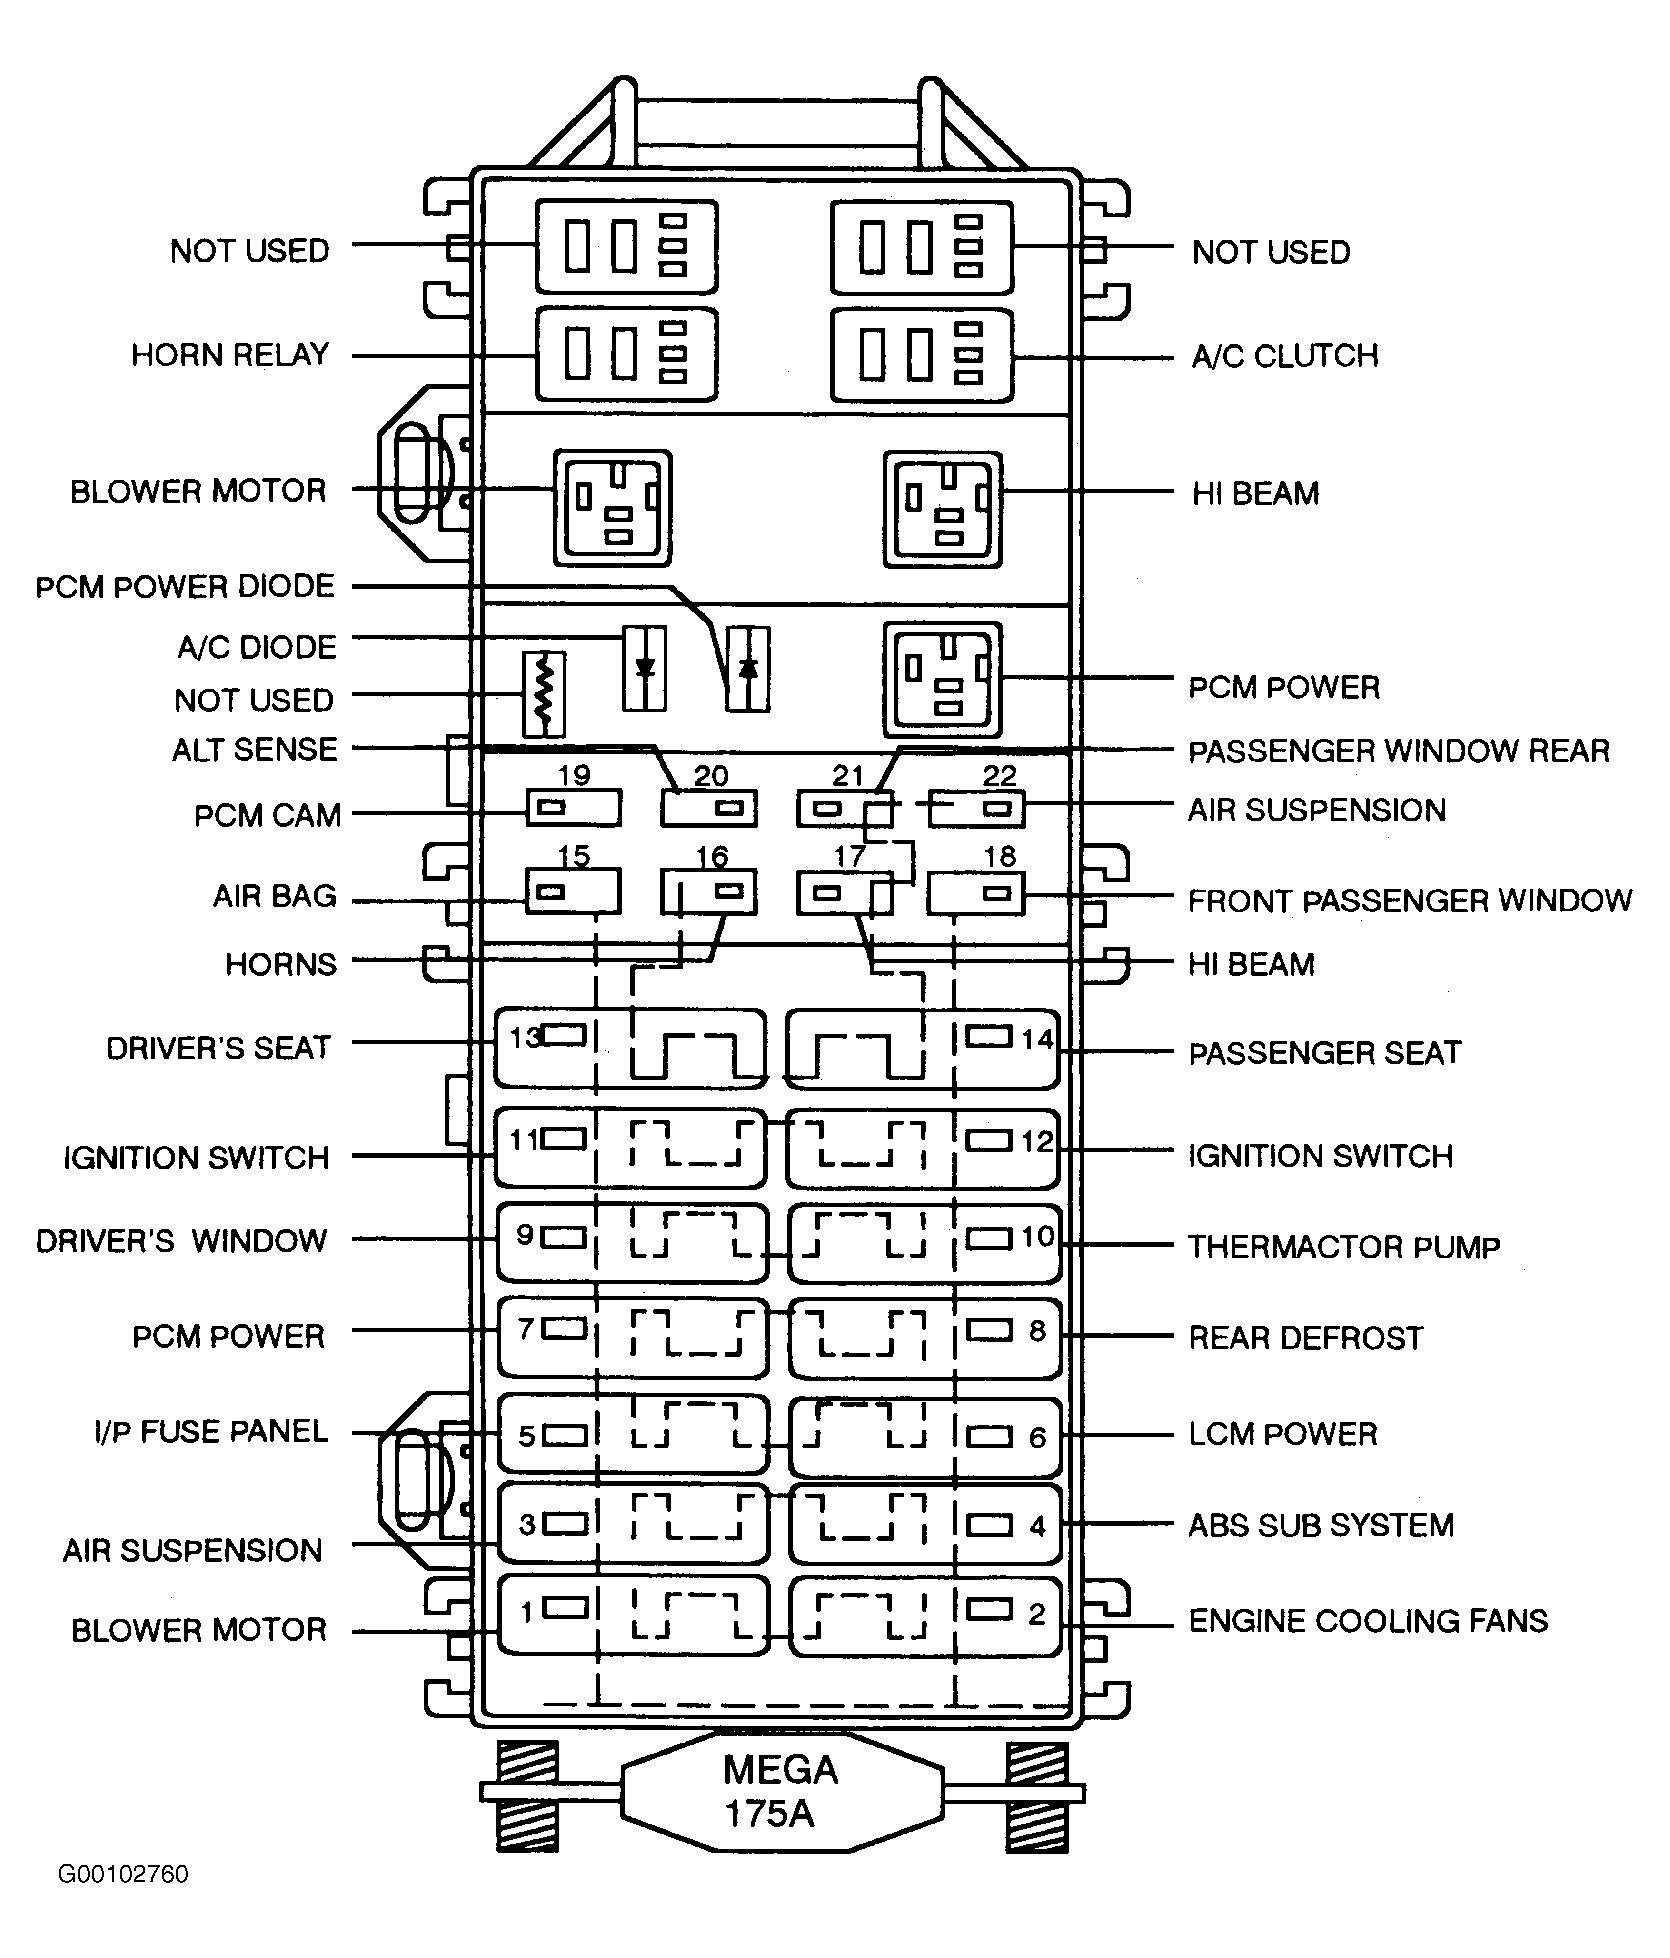 1998 lincoln continental fuse box diagram